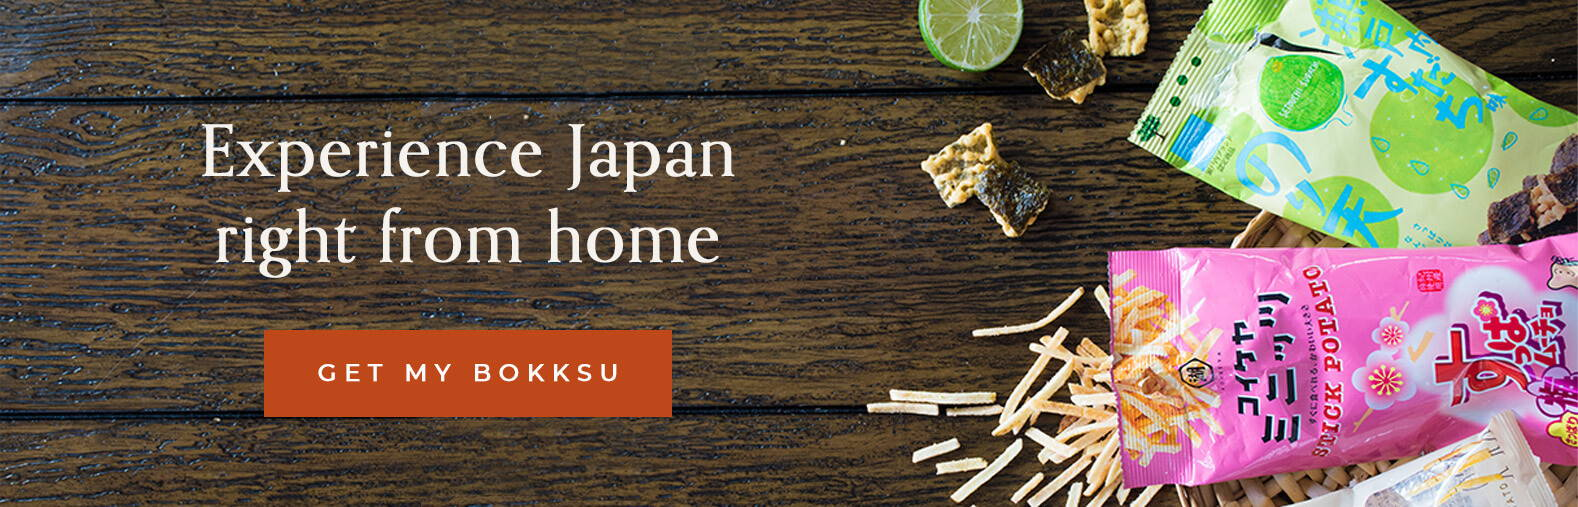 Experience Japan right from home